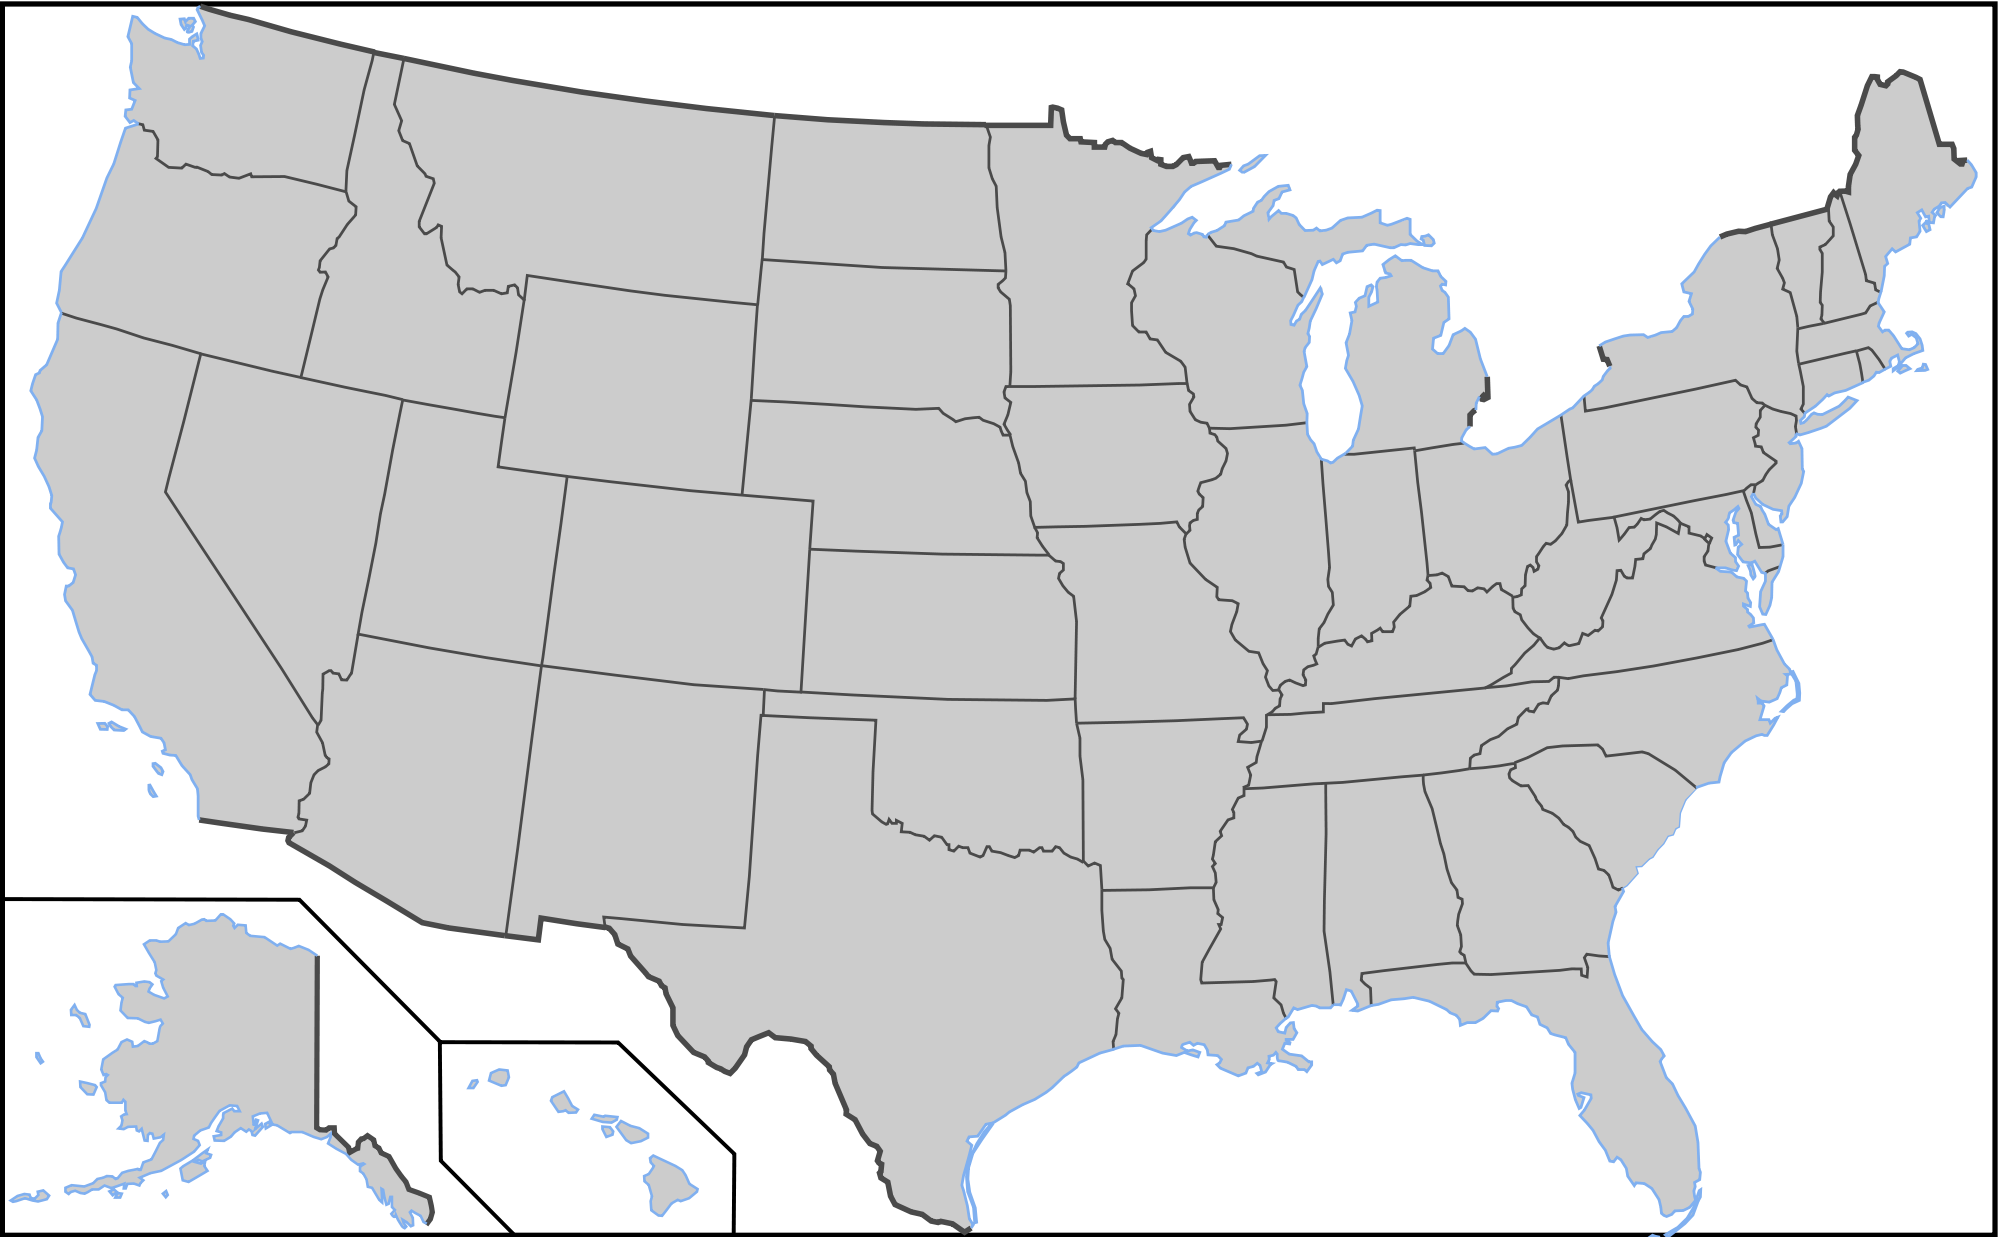 clip royalty free download Usa svg gray. Collection of free map